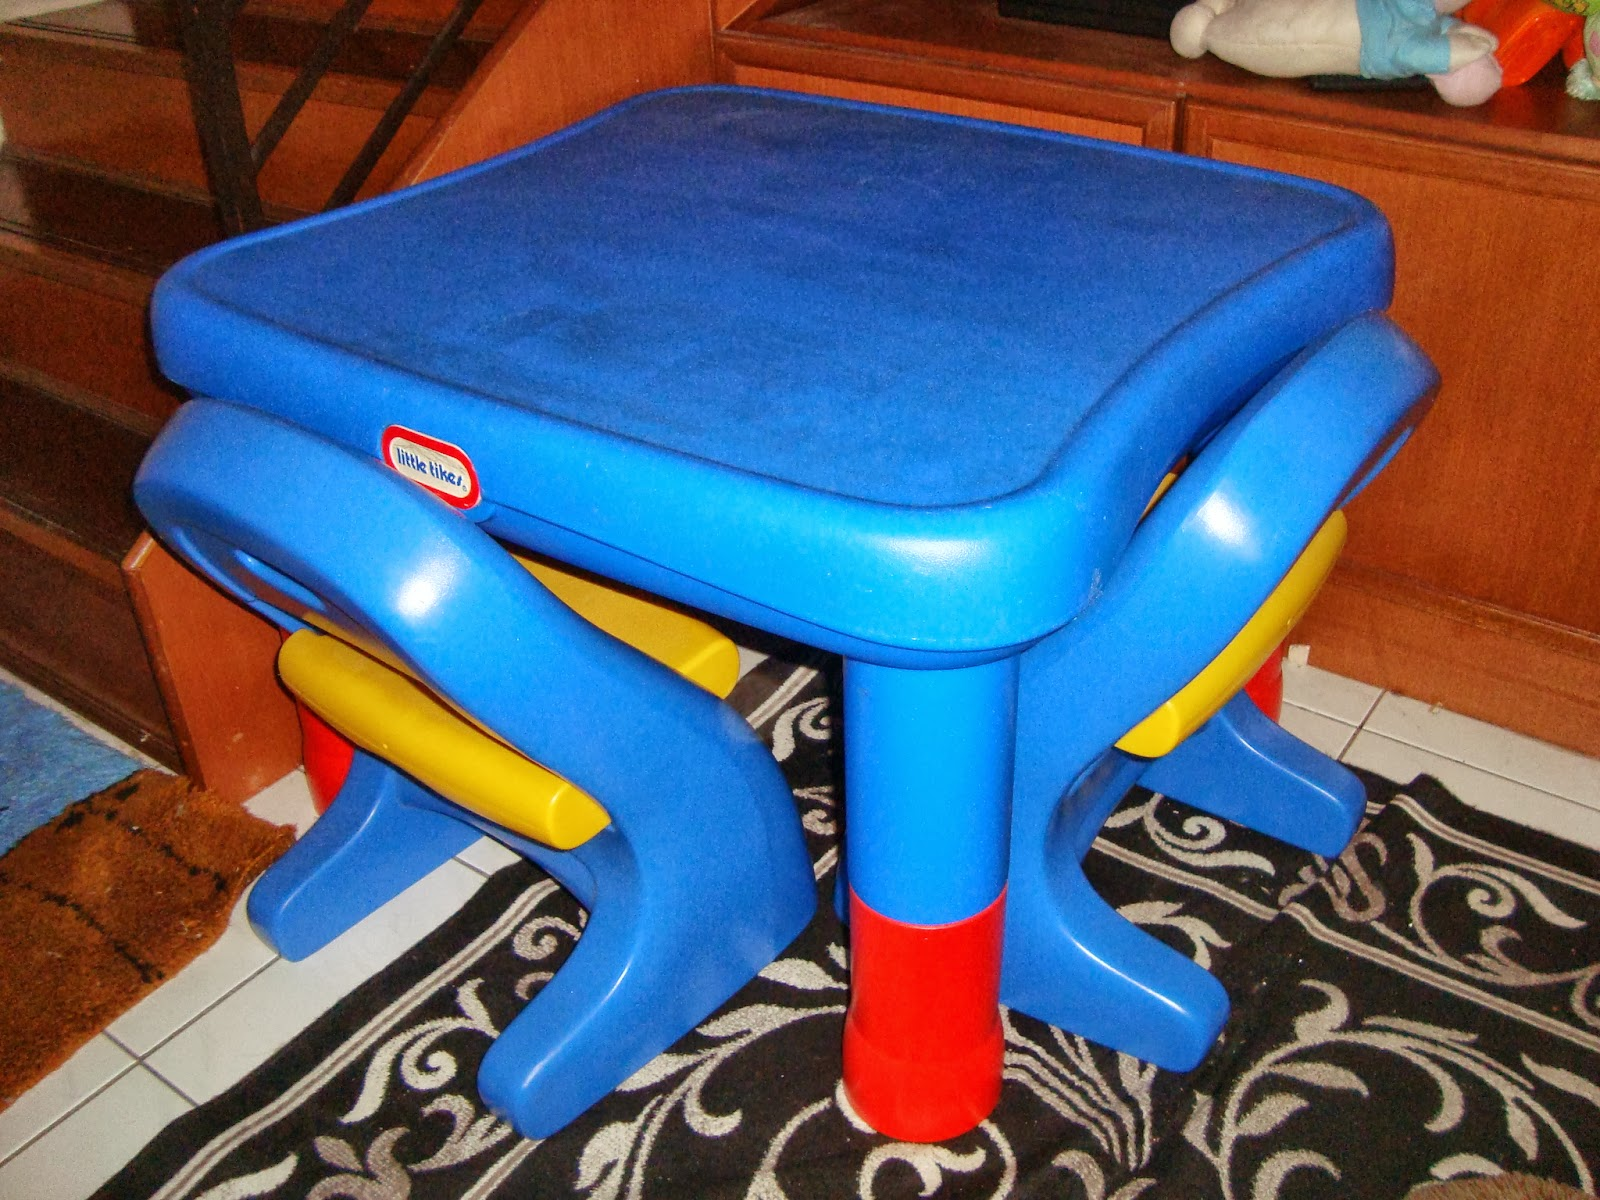 Little Tikes Chairs Swivel Chair Cushions Kedai Bundle Toys Thetottoys 7749 Adjustable